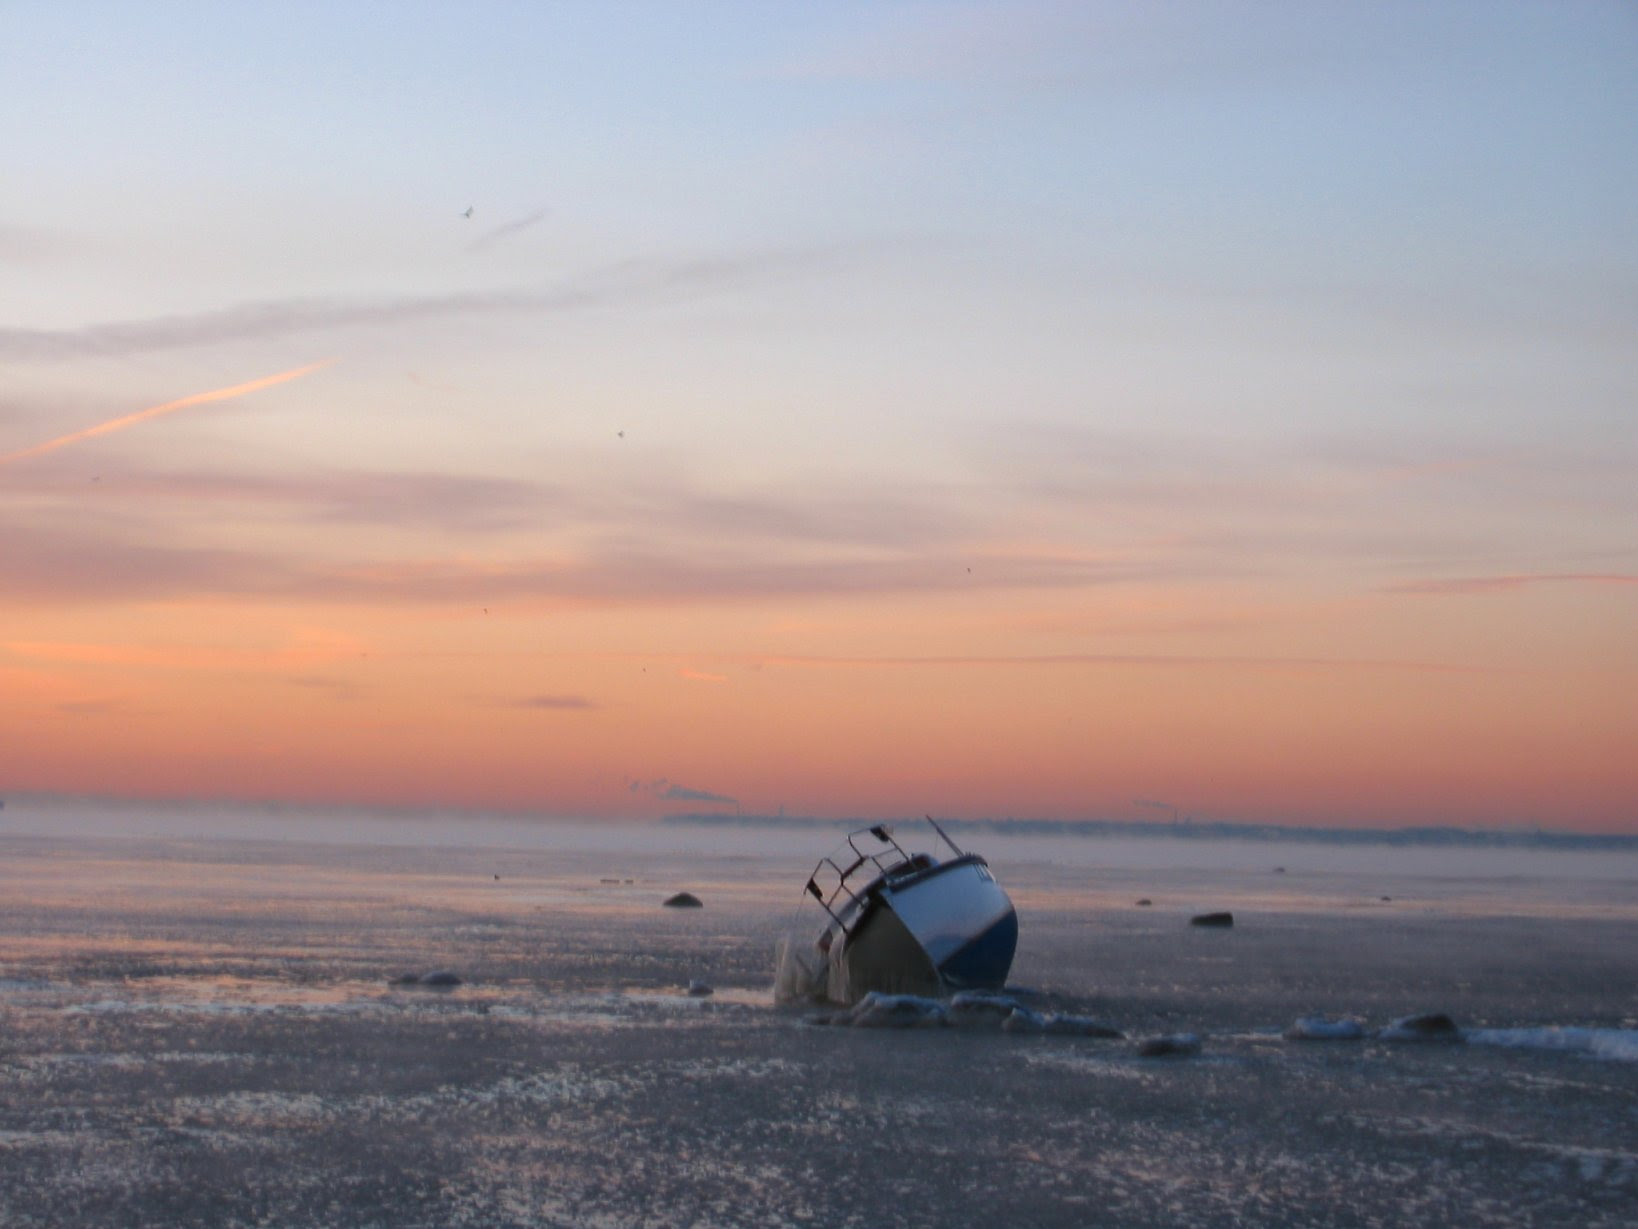 Beached Milwaukee Sailboat - with mast removed during cold Lake Michigan sunrise - 12-06-2007 -- soul-amp.com